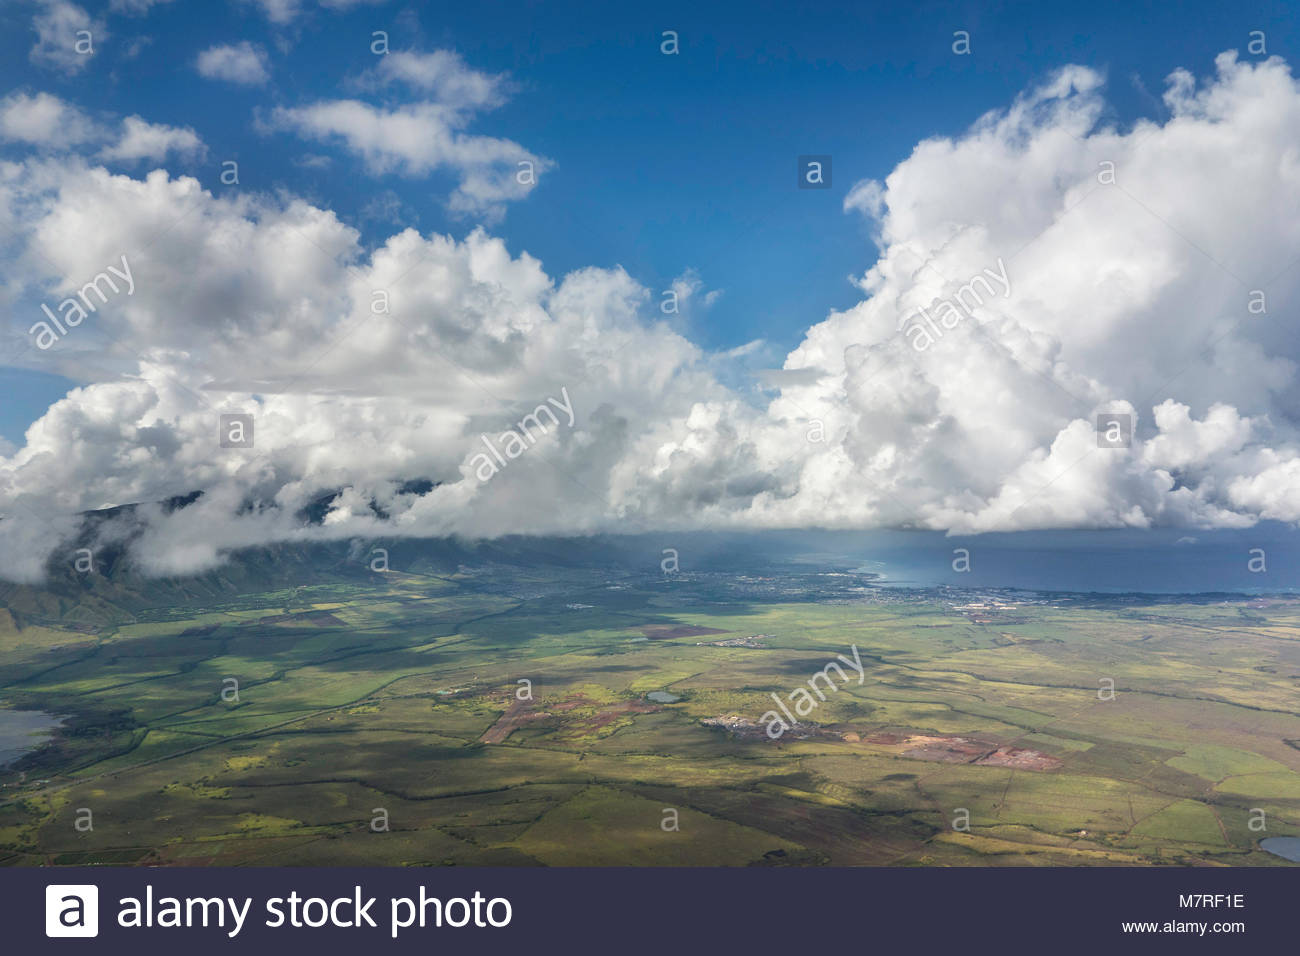 Warm moist air rising over mountainous Maui create cumulonimbus clouds watering sugar cane a hydrologic cycle state - Stock Image